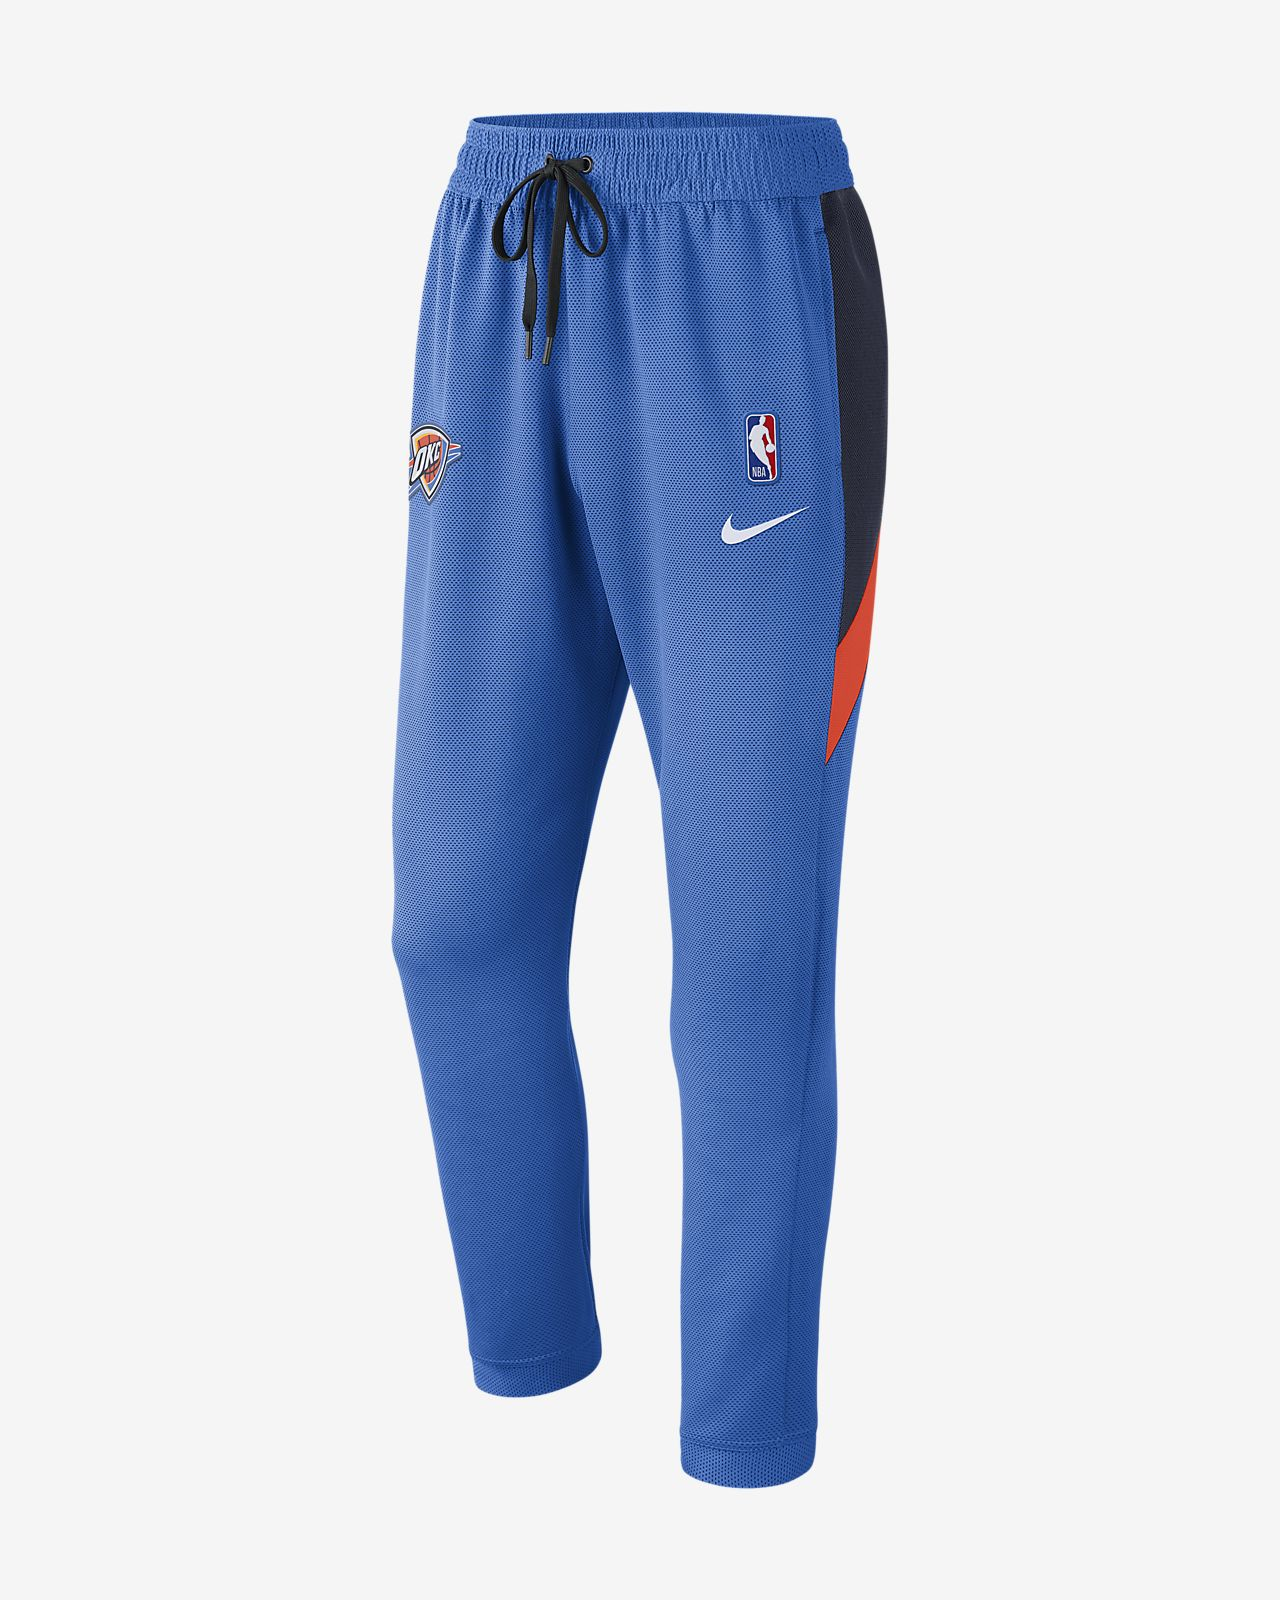 Oklahoma City Thunder Nike Therma Flex Showtime Pantalón de la NBA - Hombre